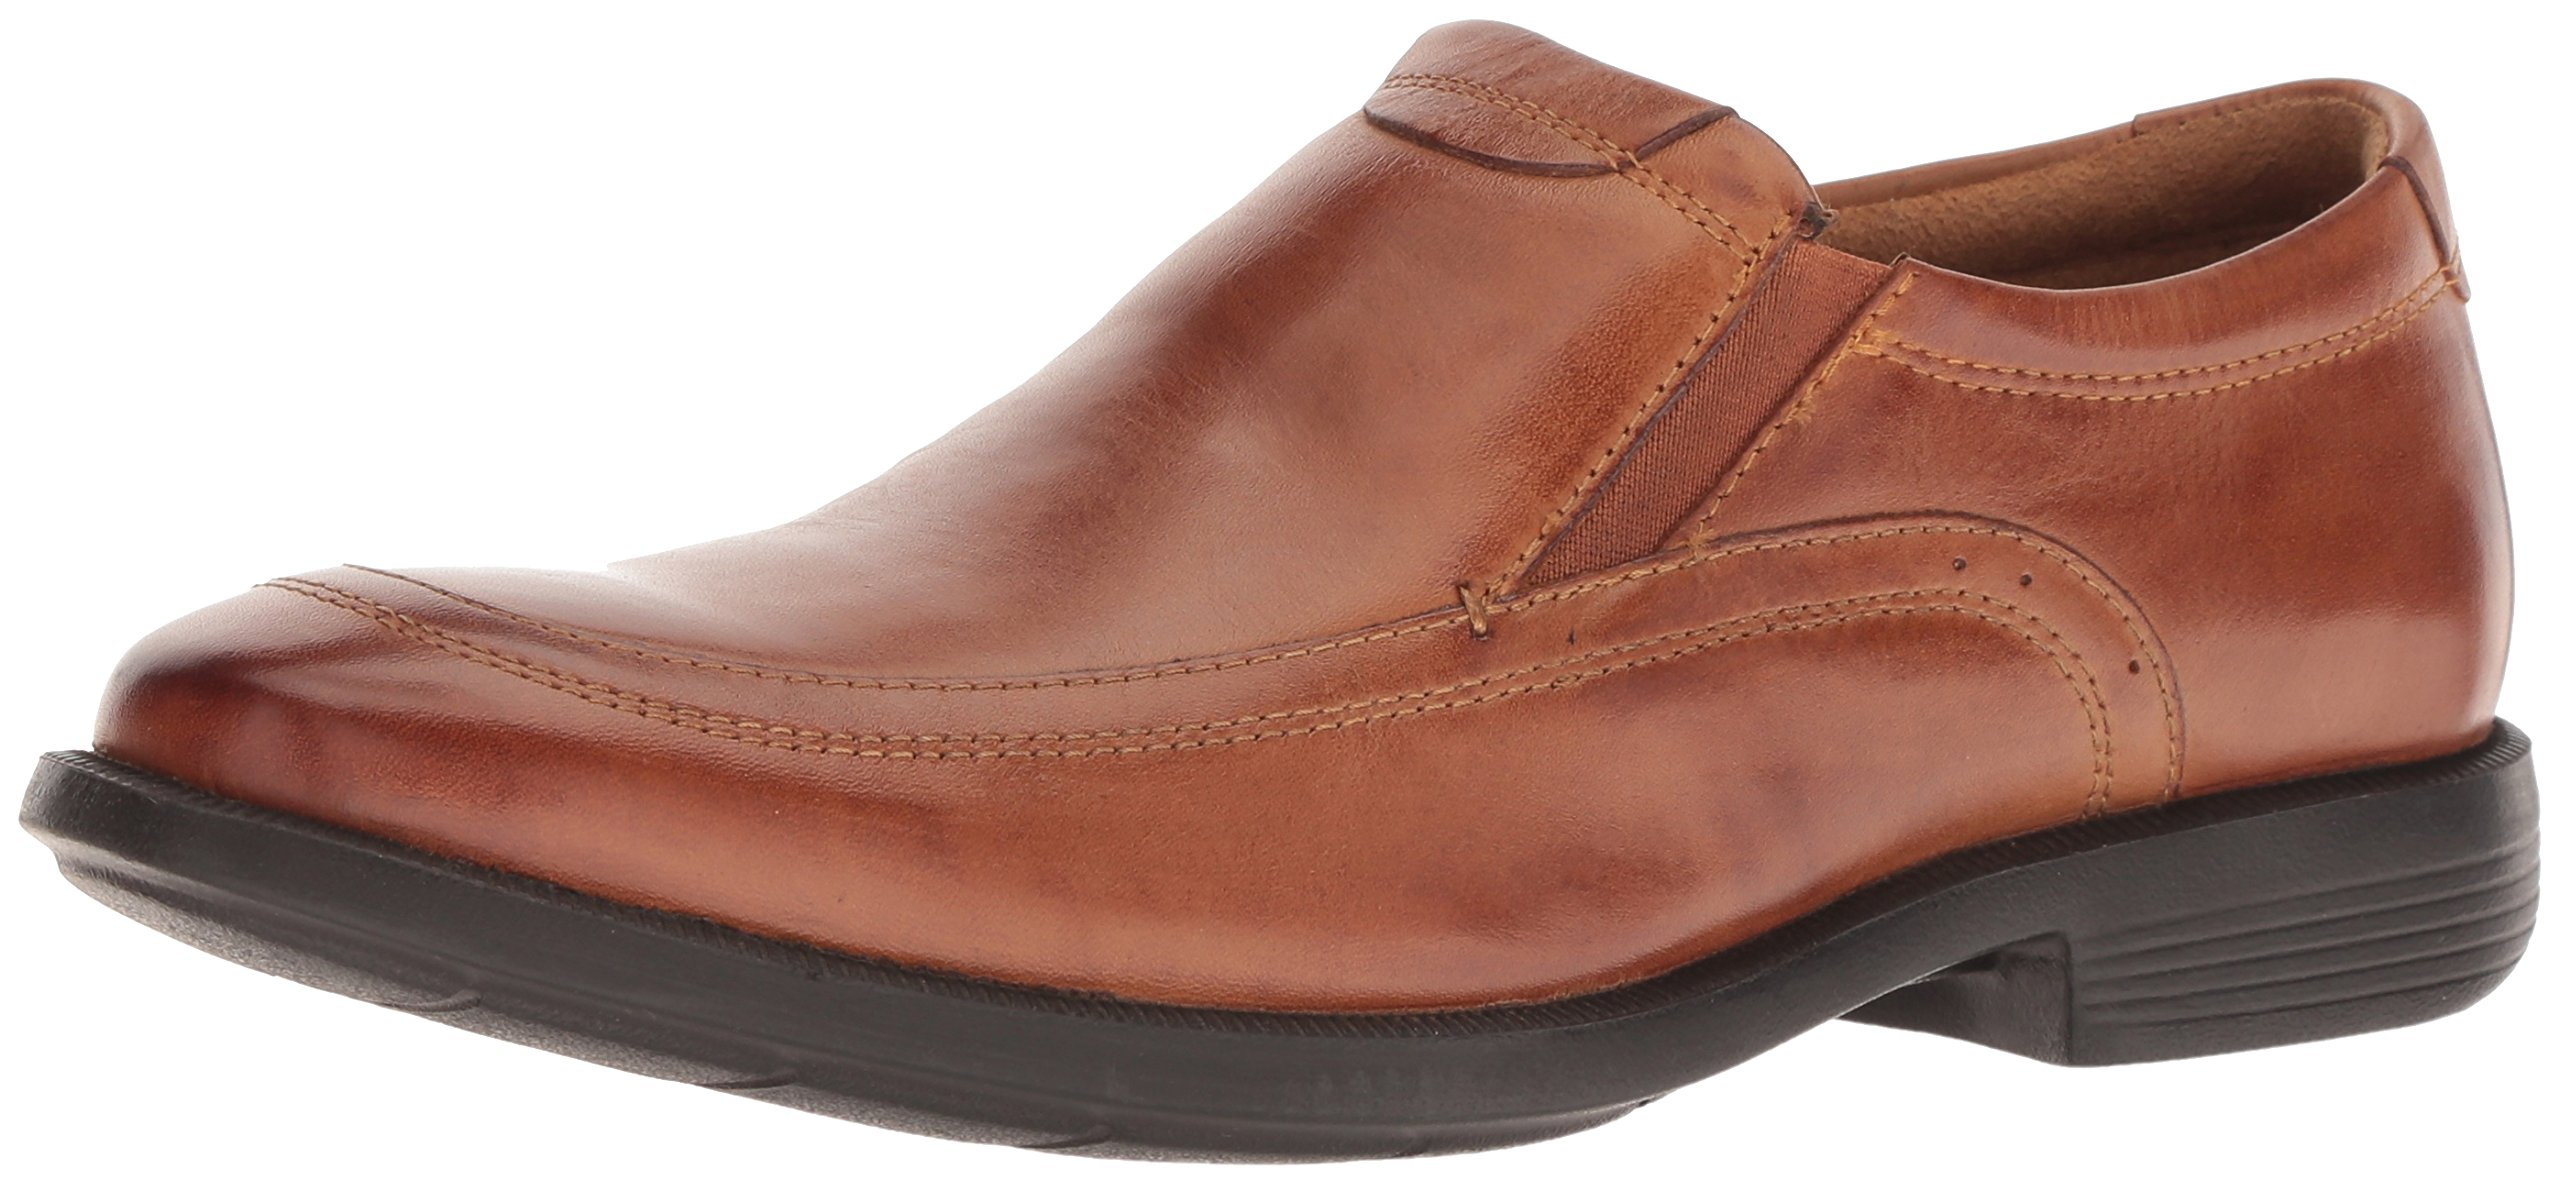 Nunn Bush Men's Dylan Loafer, Cognac, 13 M US